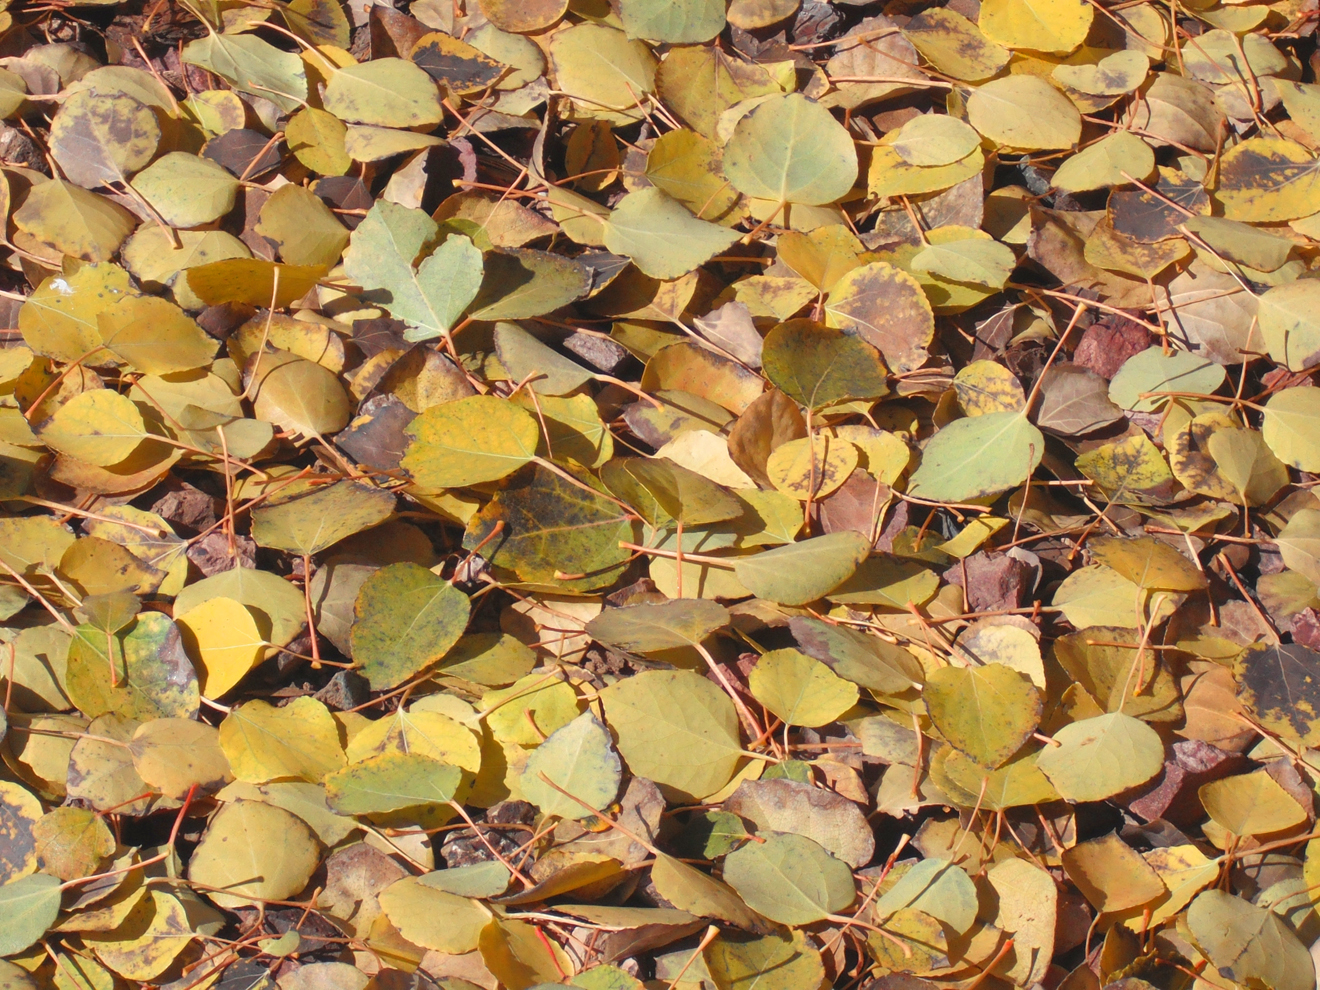 Earth - Leaf  - Carpet Of Leaves -  Nature Wallpaper